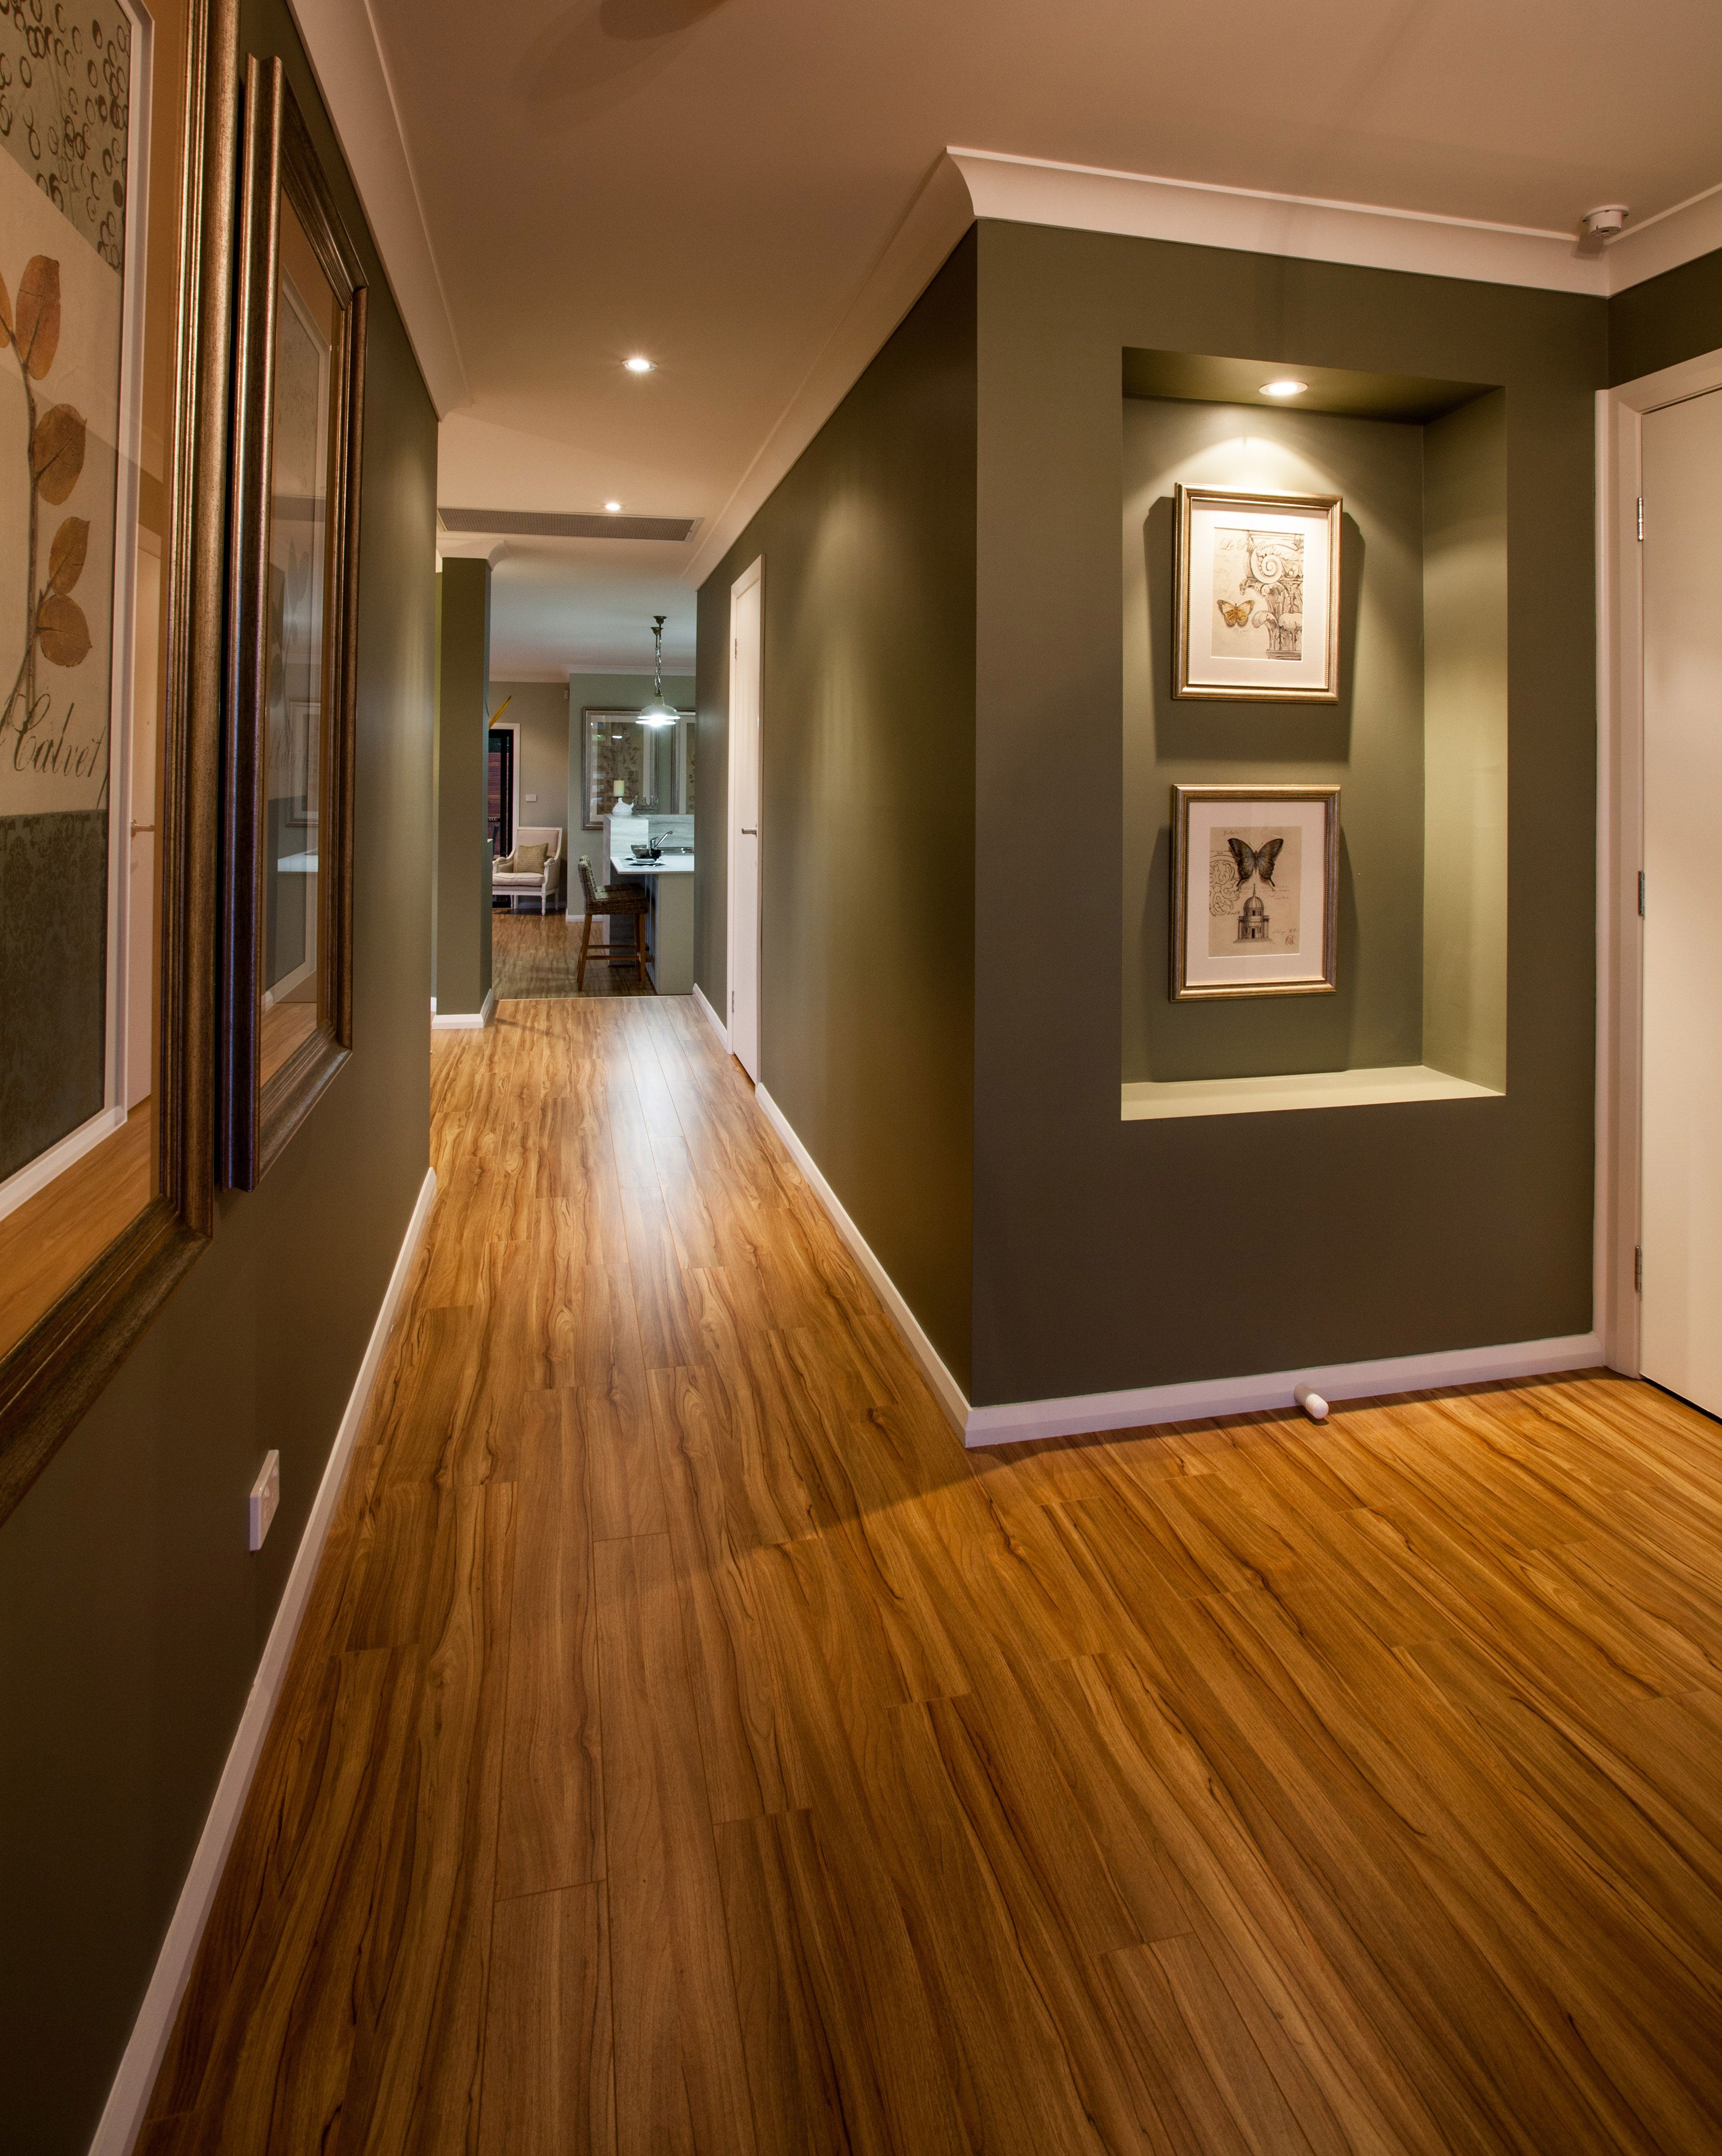 Foyer Lighting Qld : This hallway is full or artwork and recessed walls with